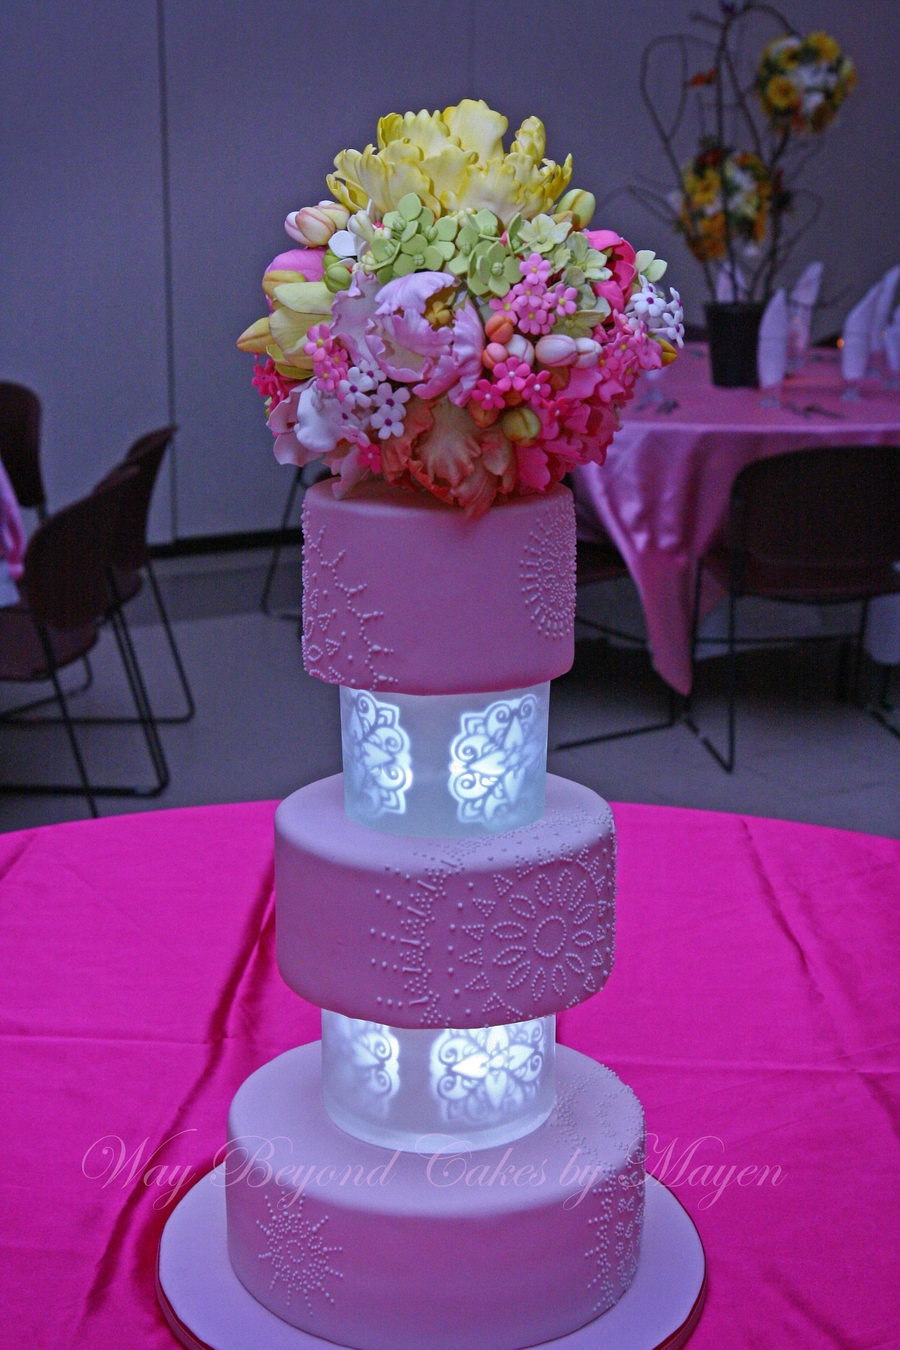 Pale Pink Cake With Self Illuminated Tiers Separators - CakeCentral.com